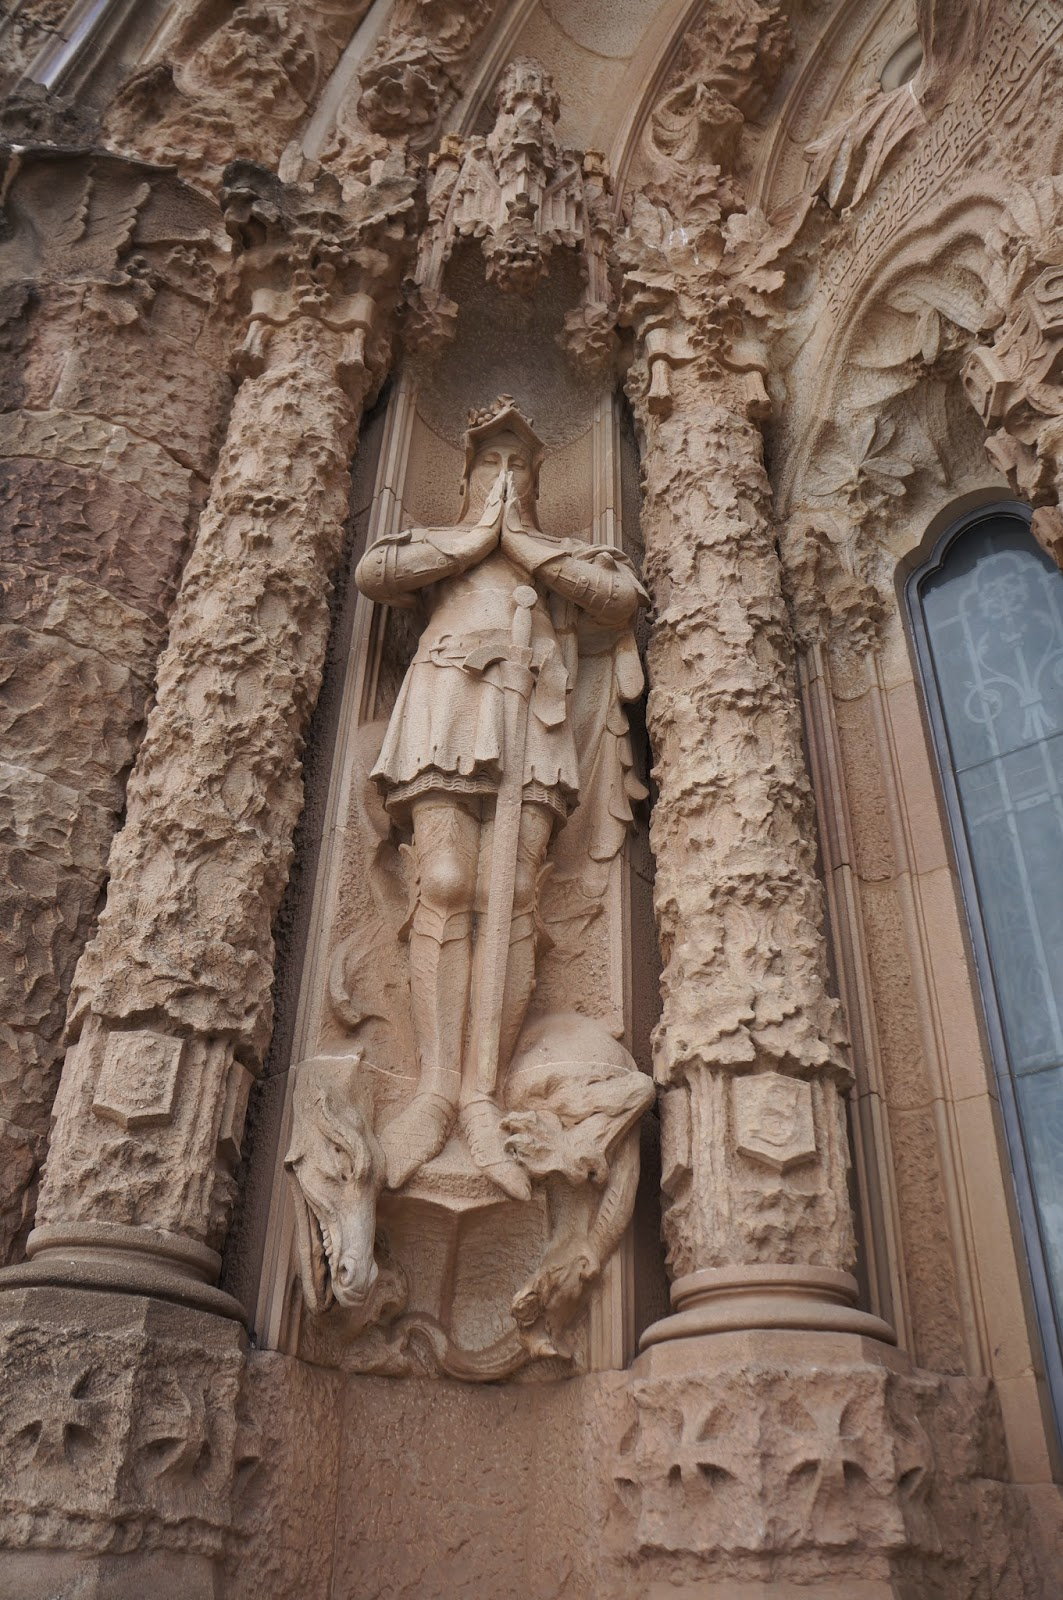 sculptural detail of Saint George in the Sagrada Familia in Barcelona Spain